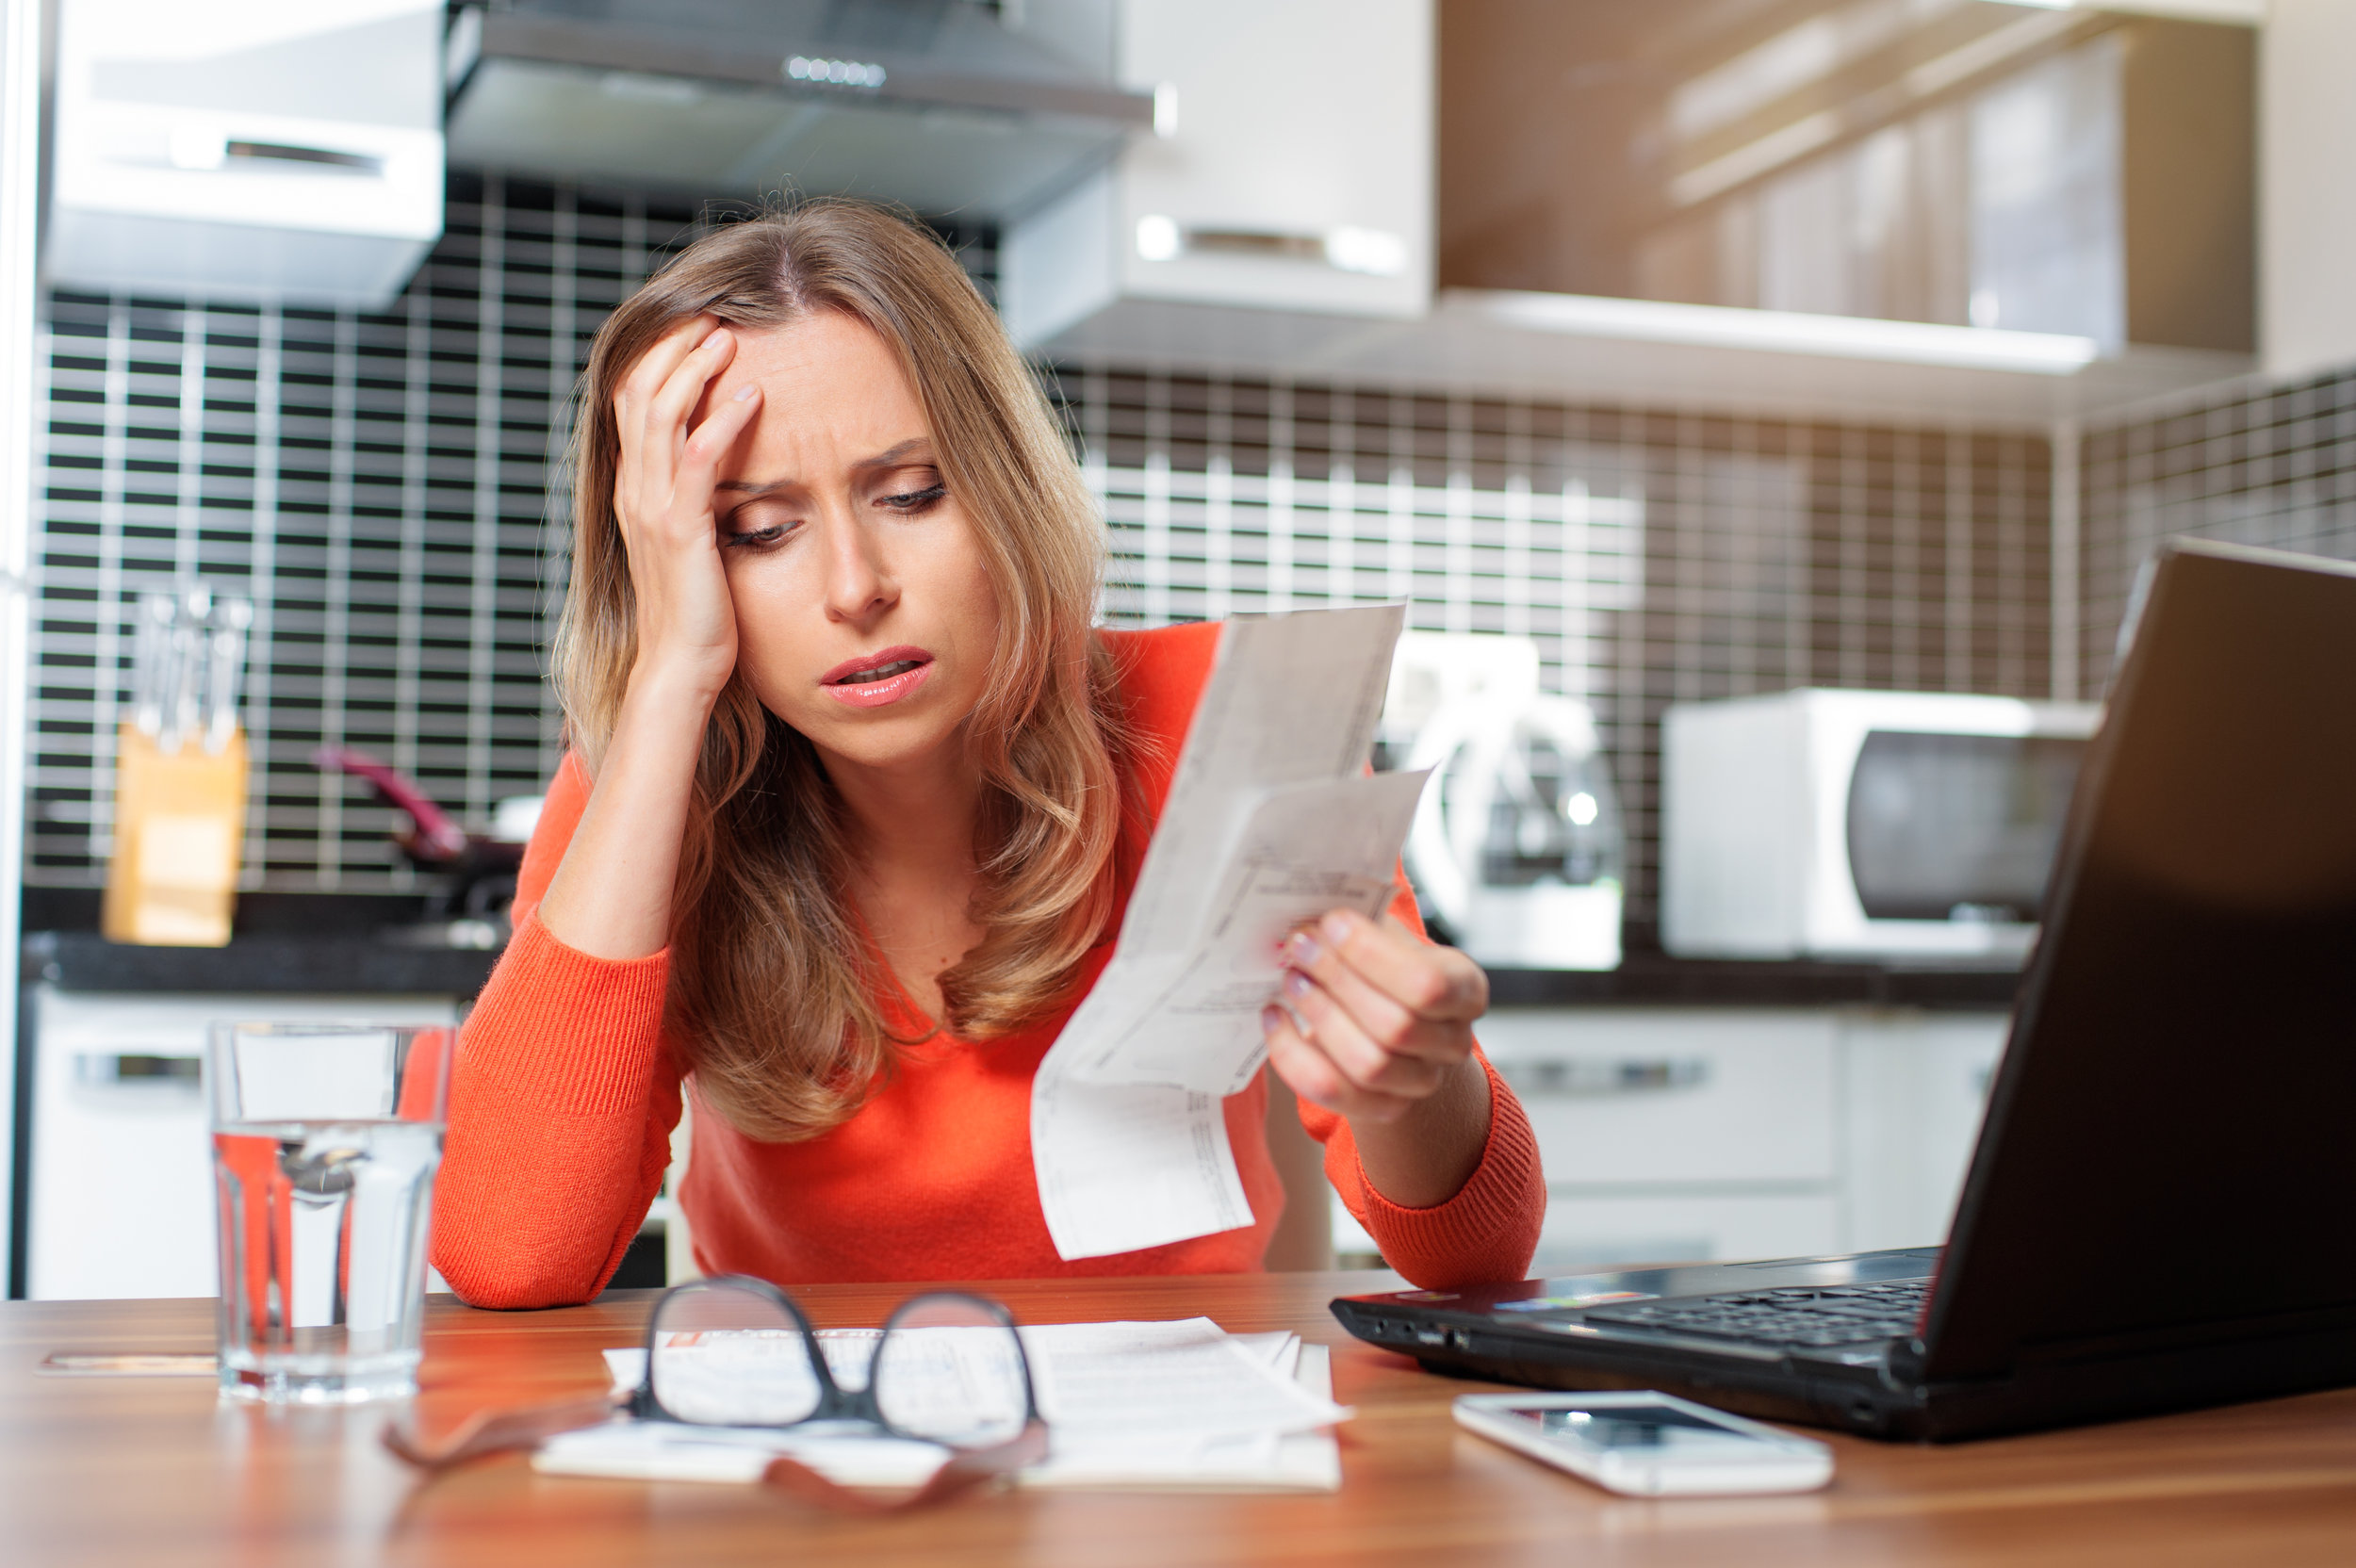 Woman sitting in kitchen stressed out about medical bills